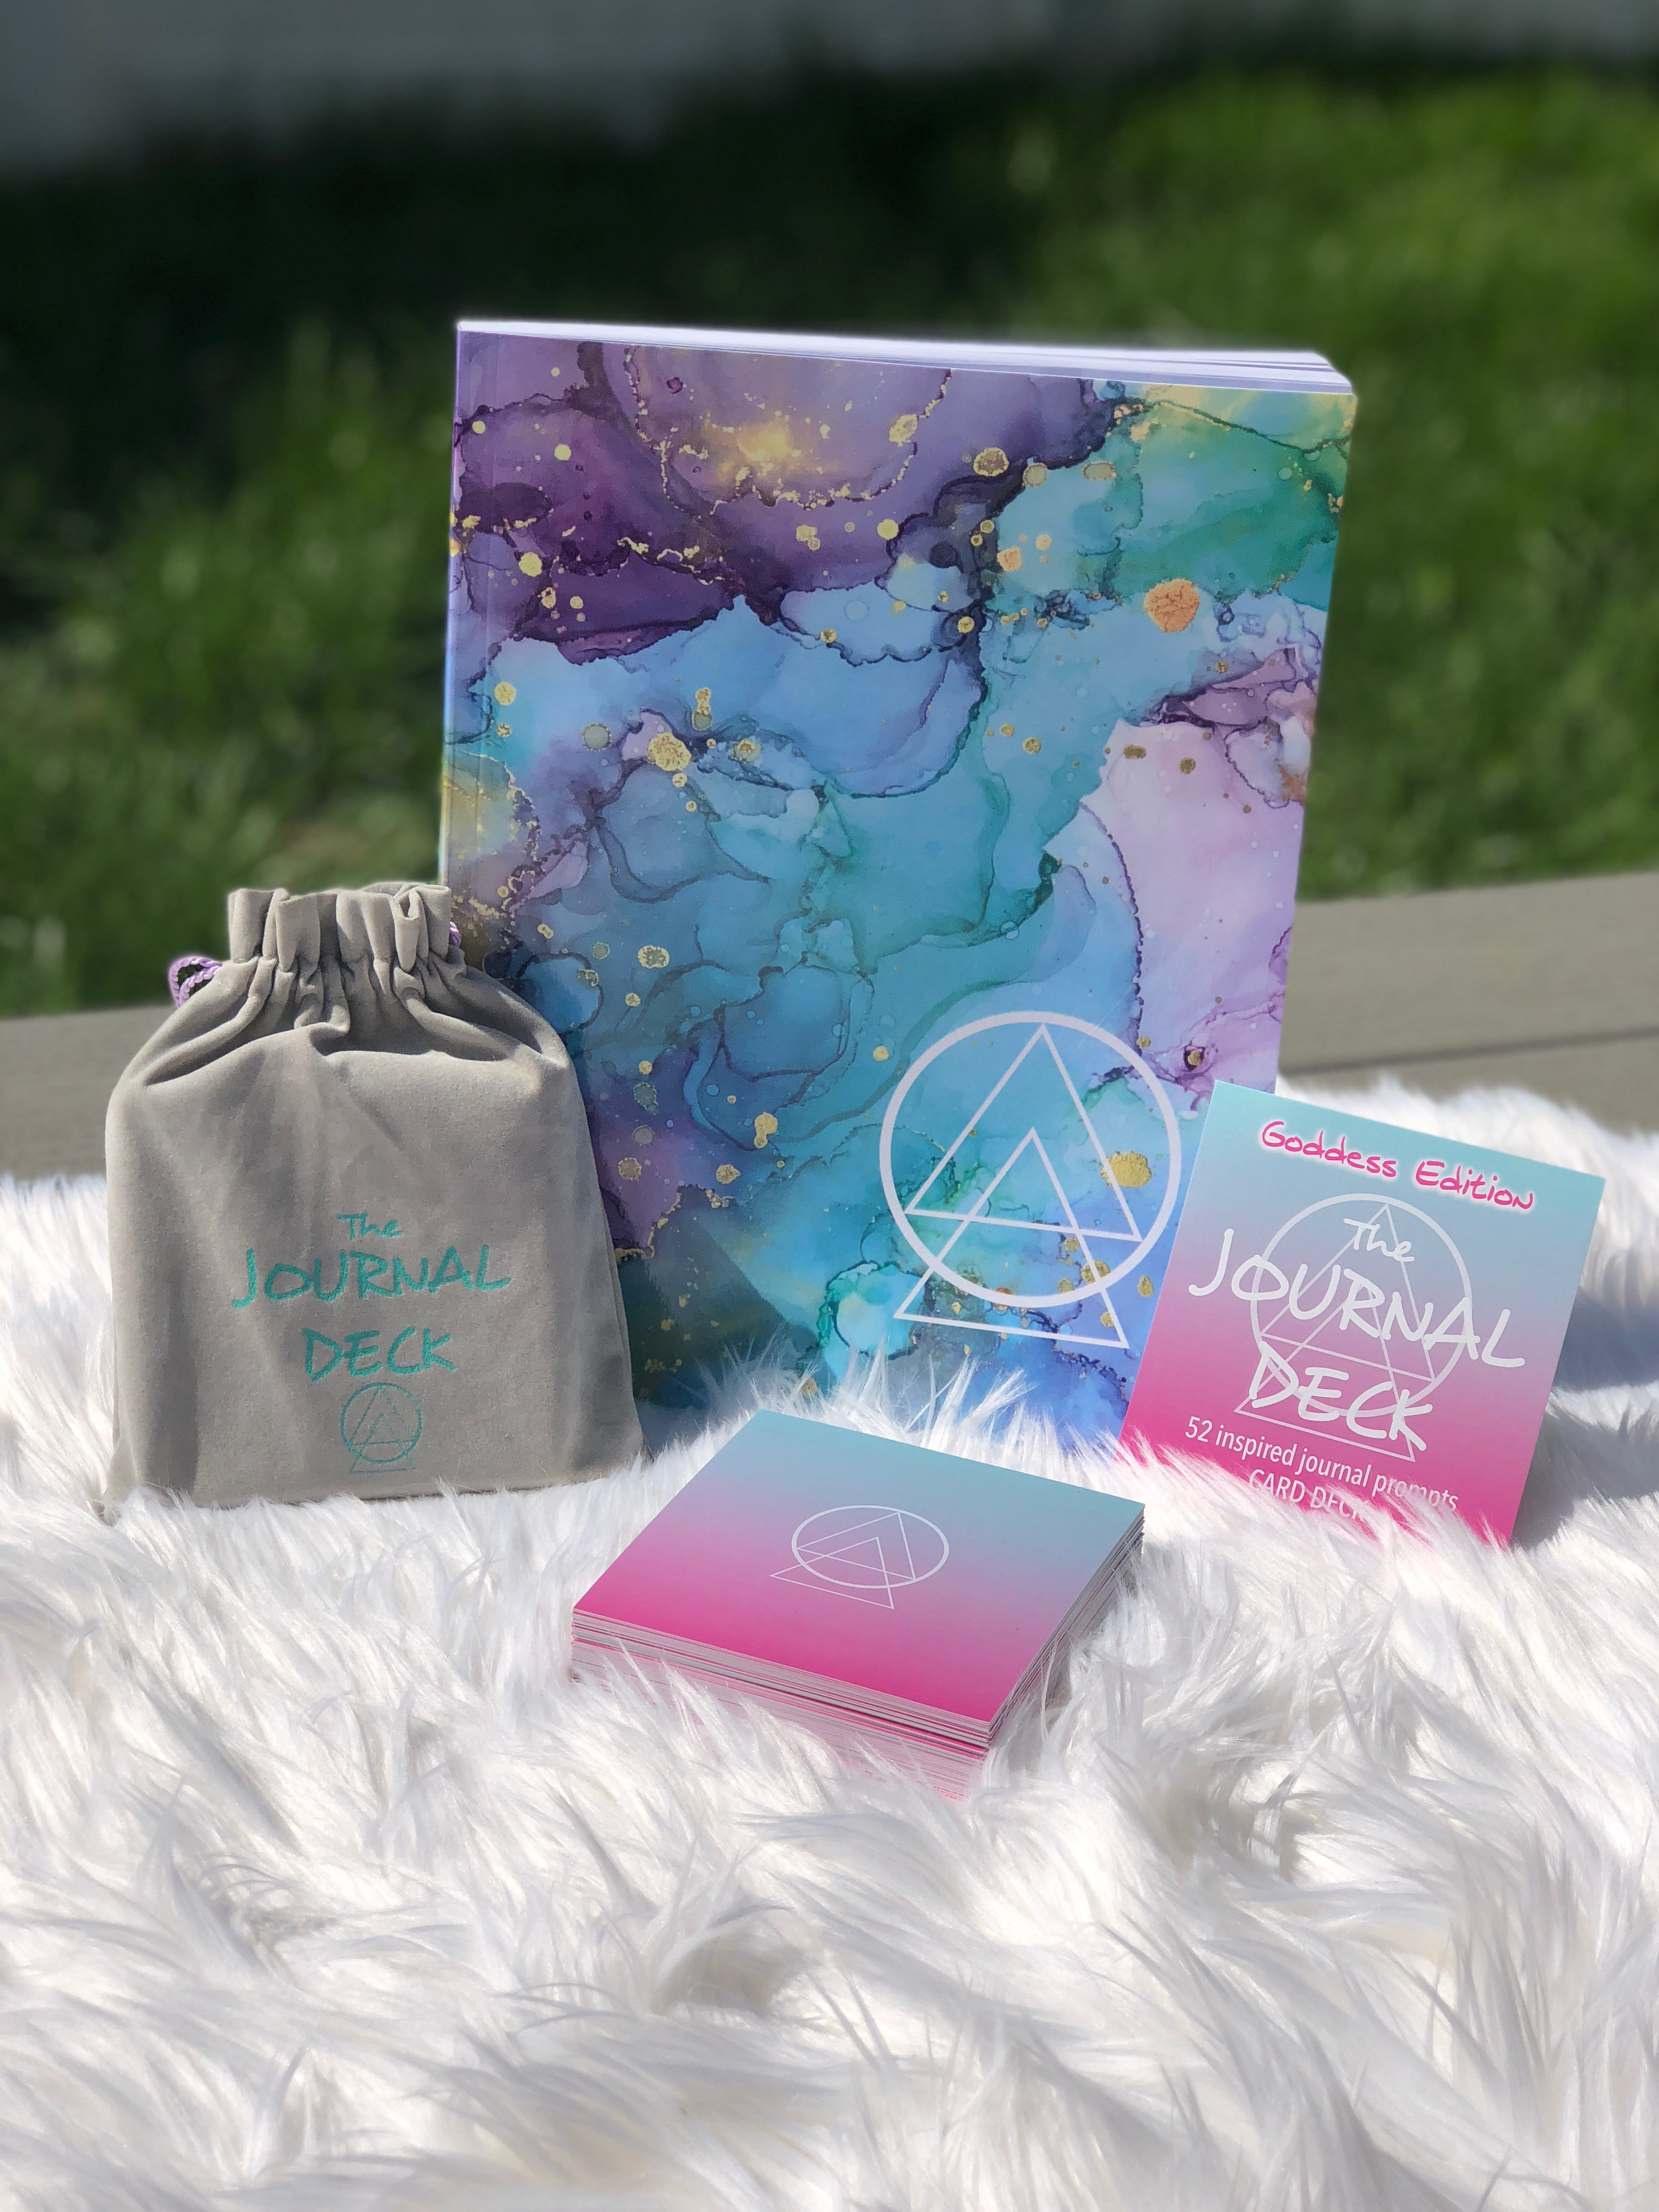 PRE-ORDEr now - Companion Journal + Goddess Edition Deck $45